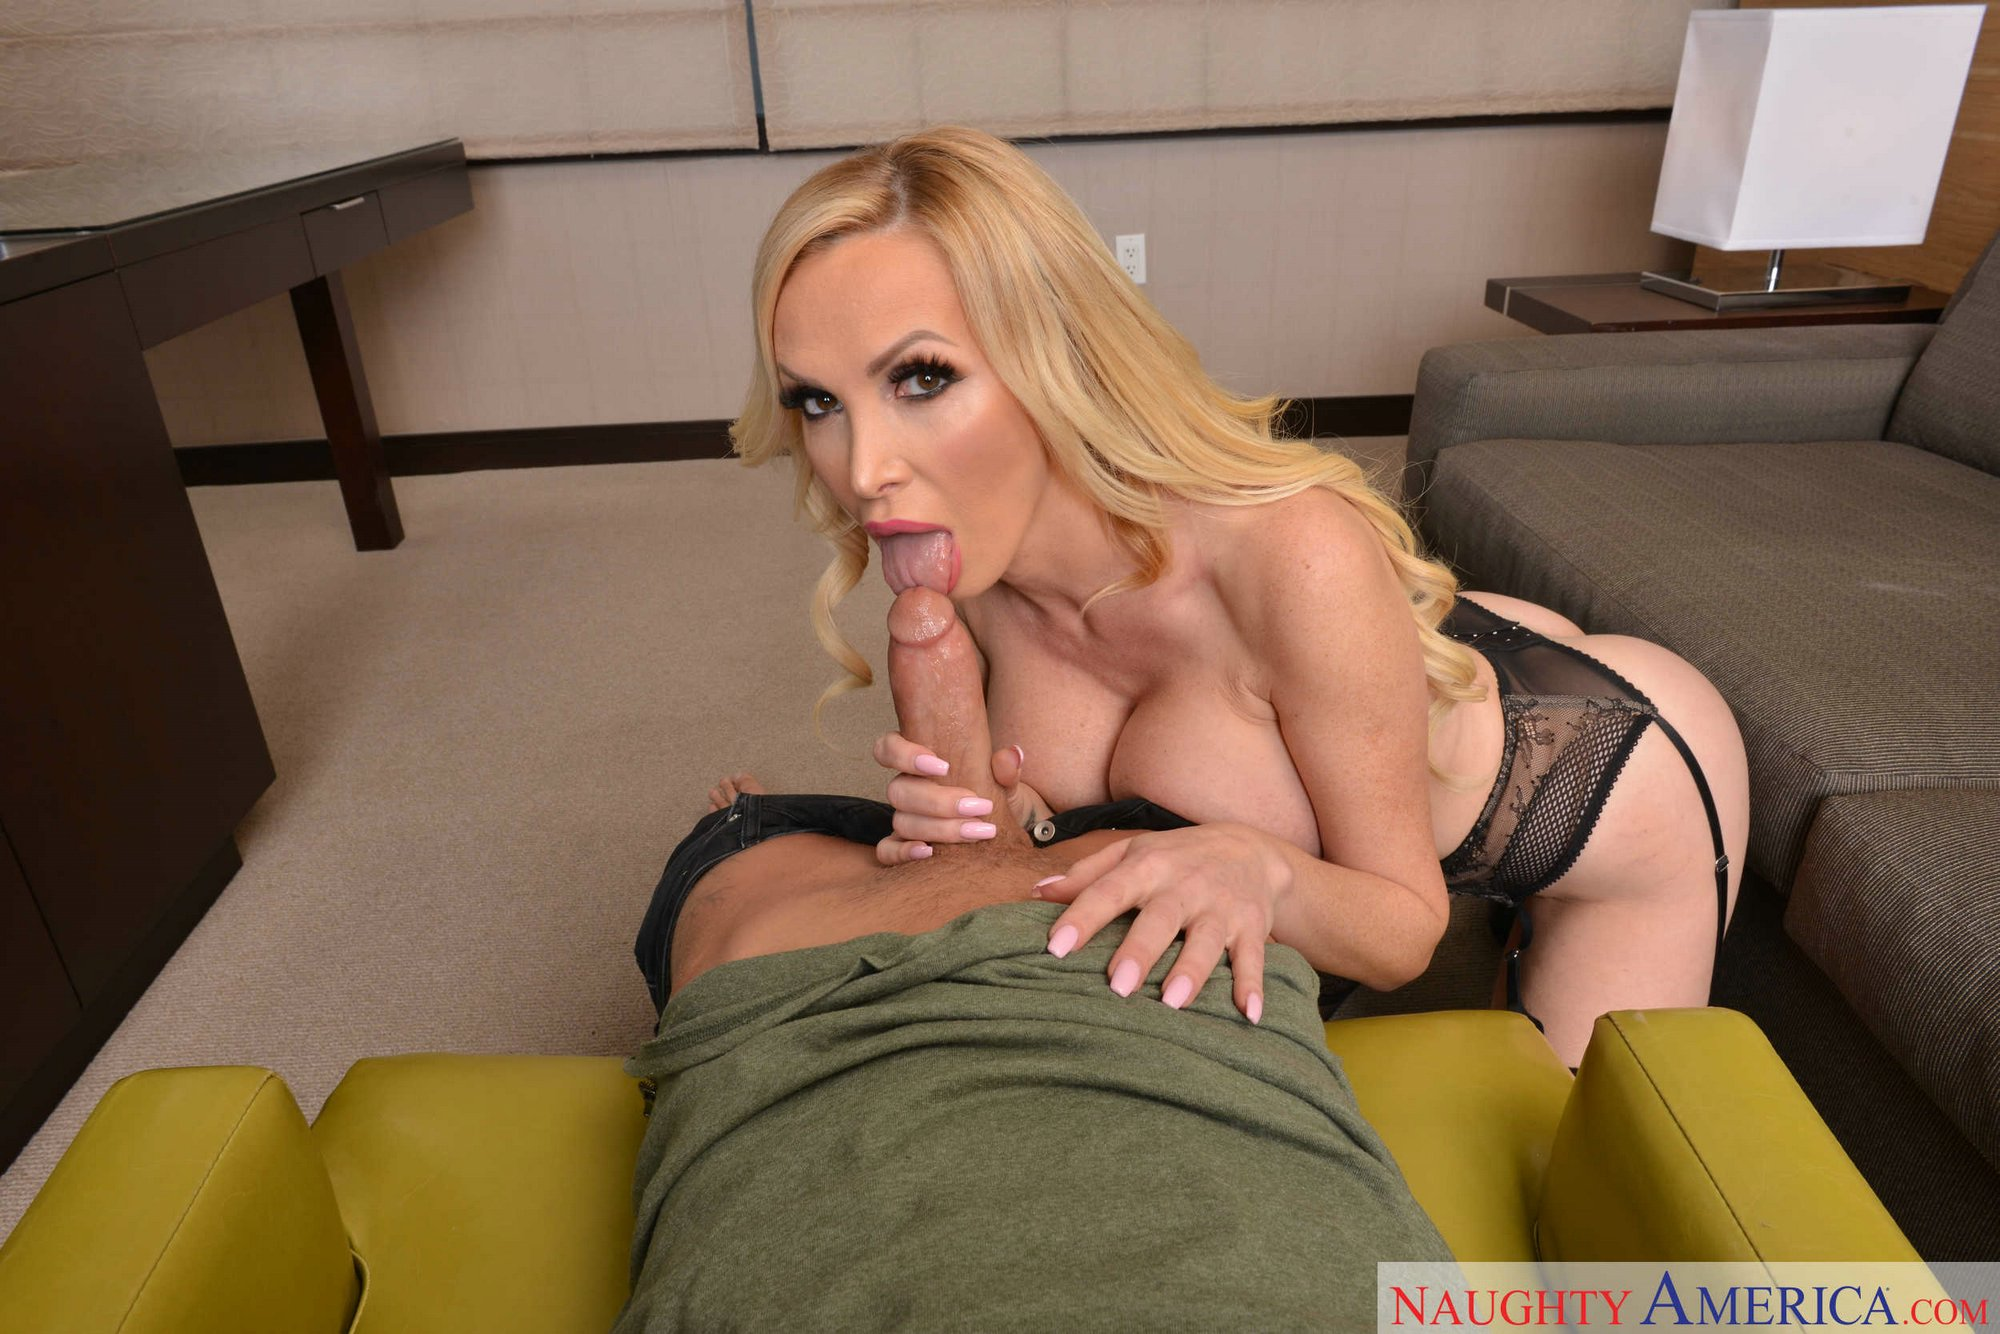 Consider, hot blonde nikki benz something